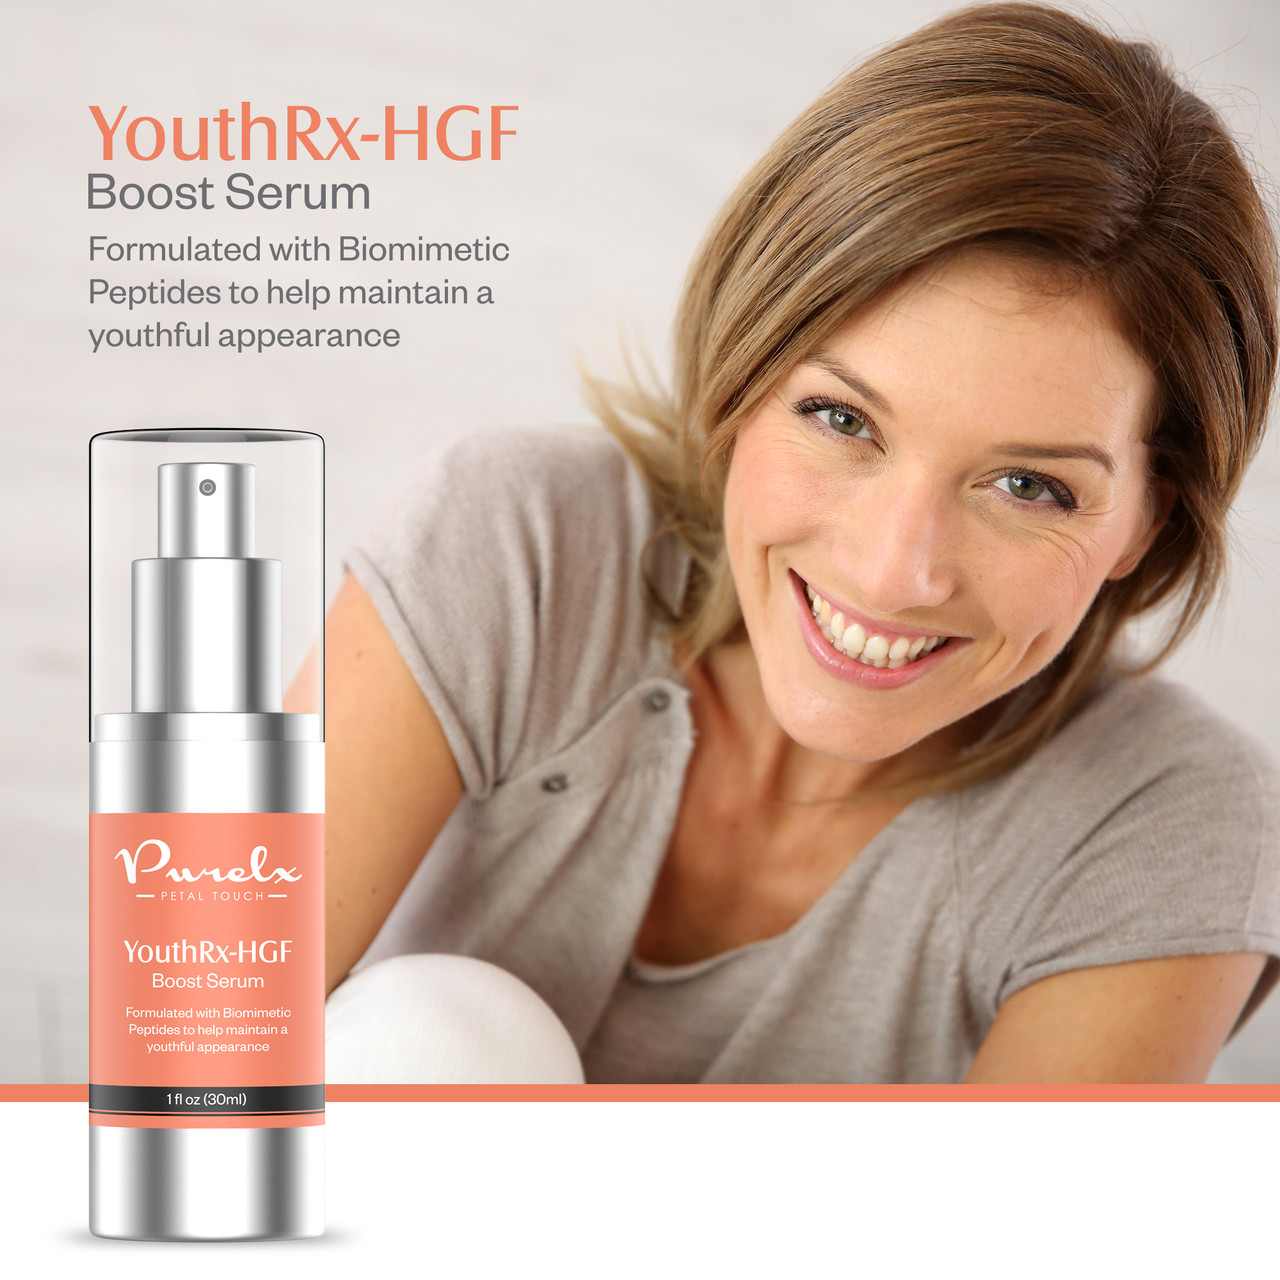 Simulating the fundamental hormones that define youth has allowed us to unlock this secret spring of age defying results. Enrich your appearance and look younger with this exceptional age restoring serum.